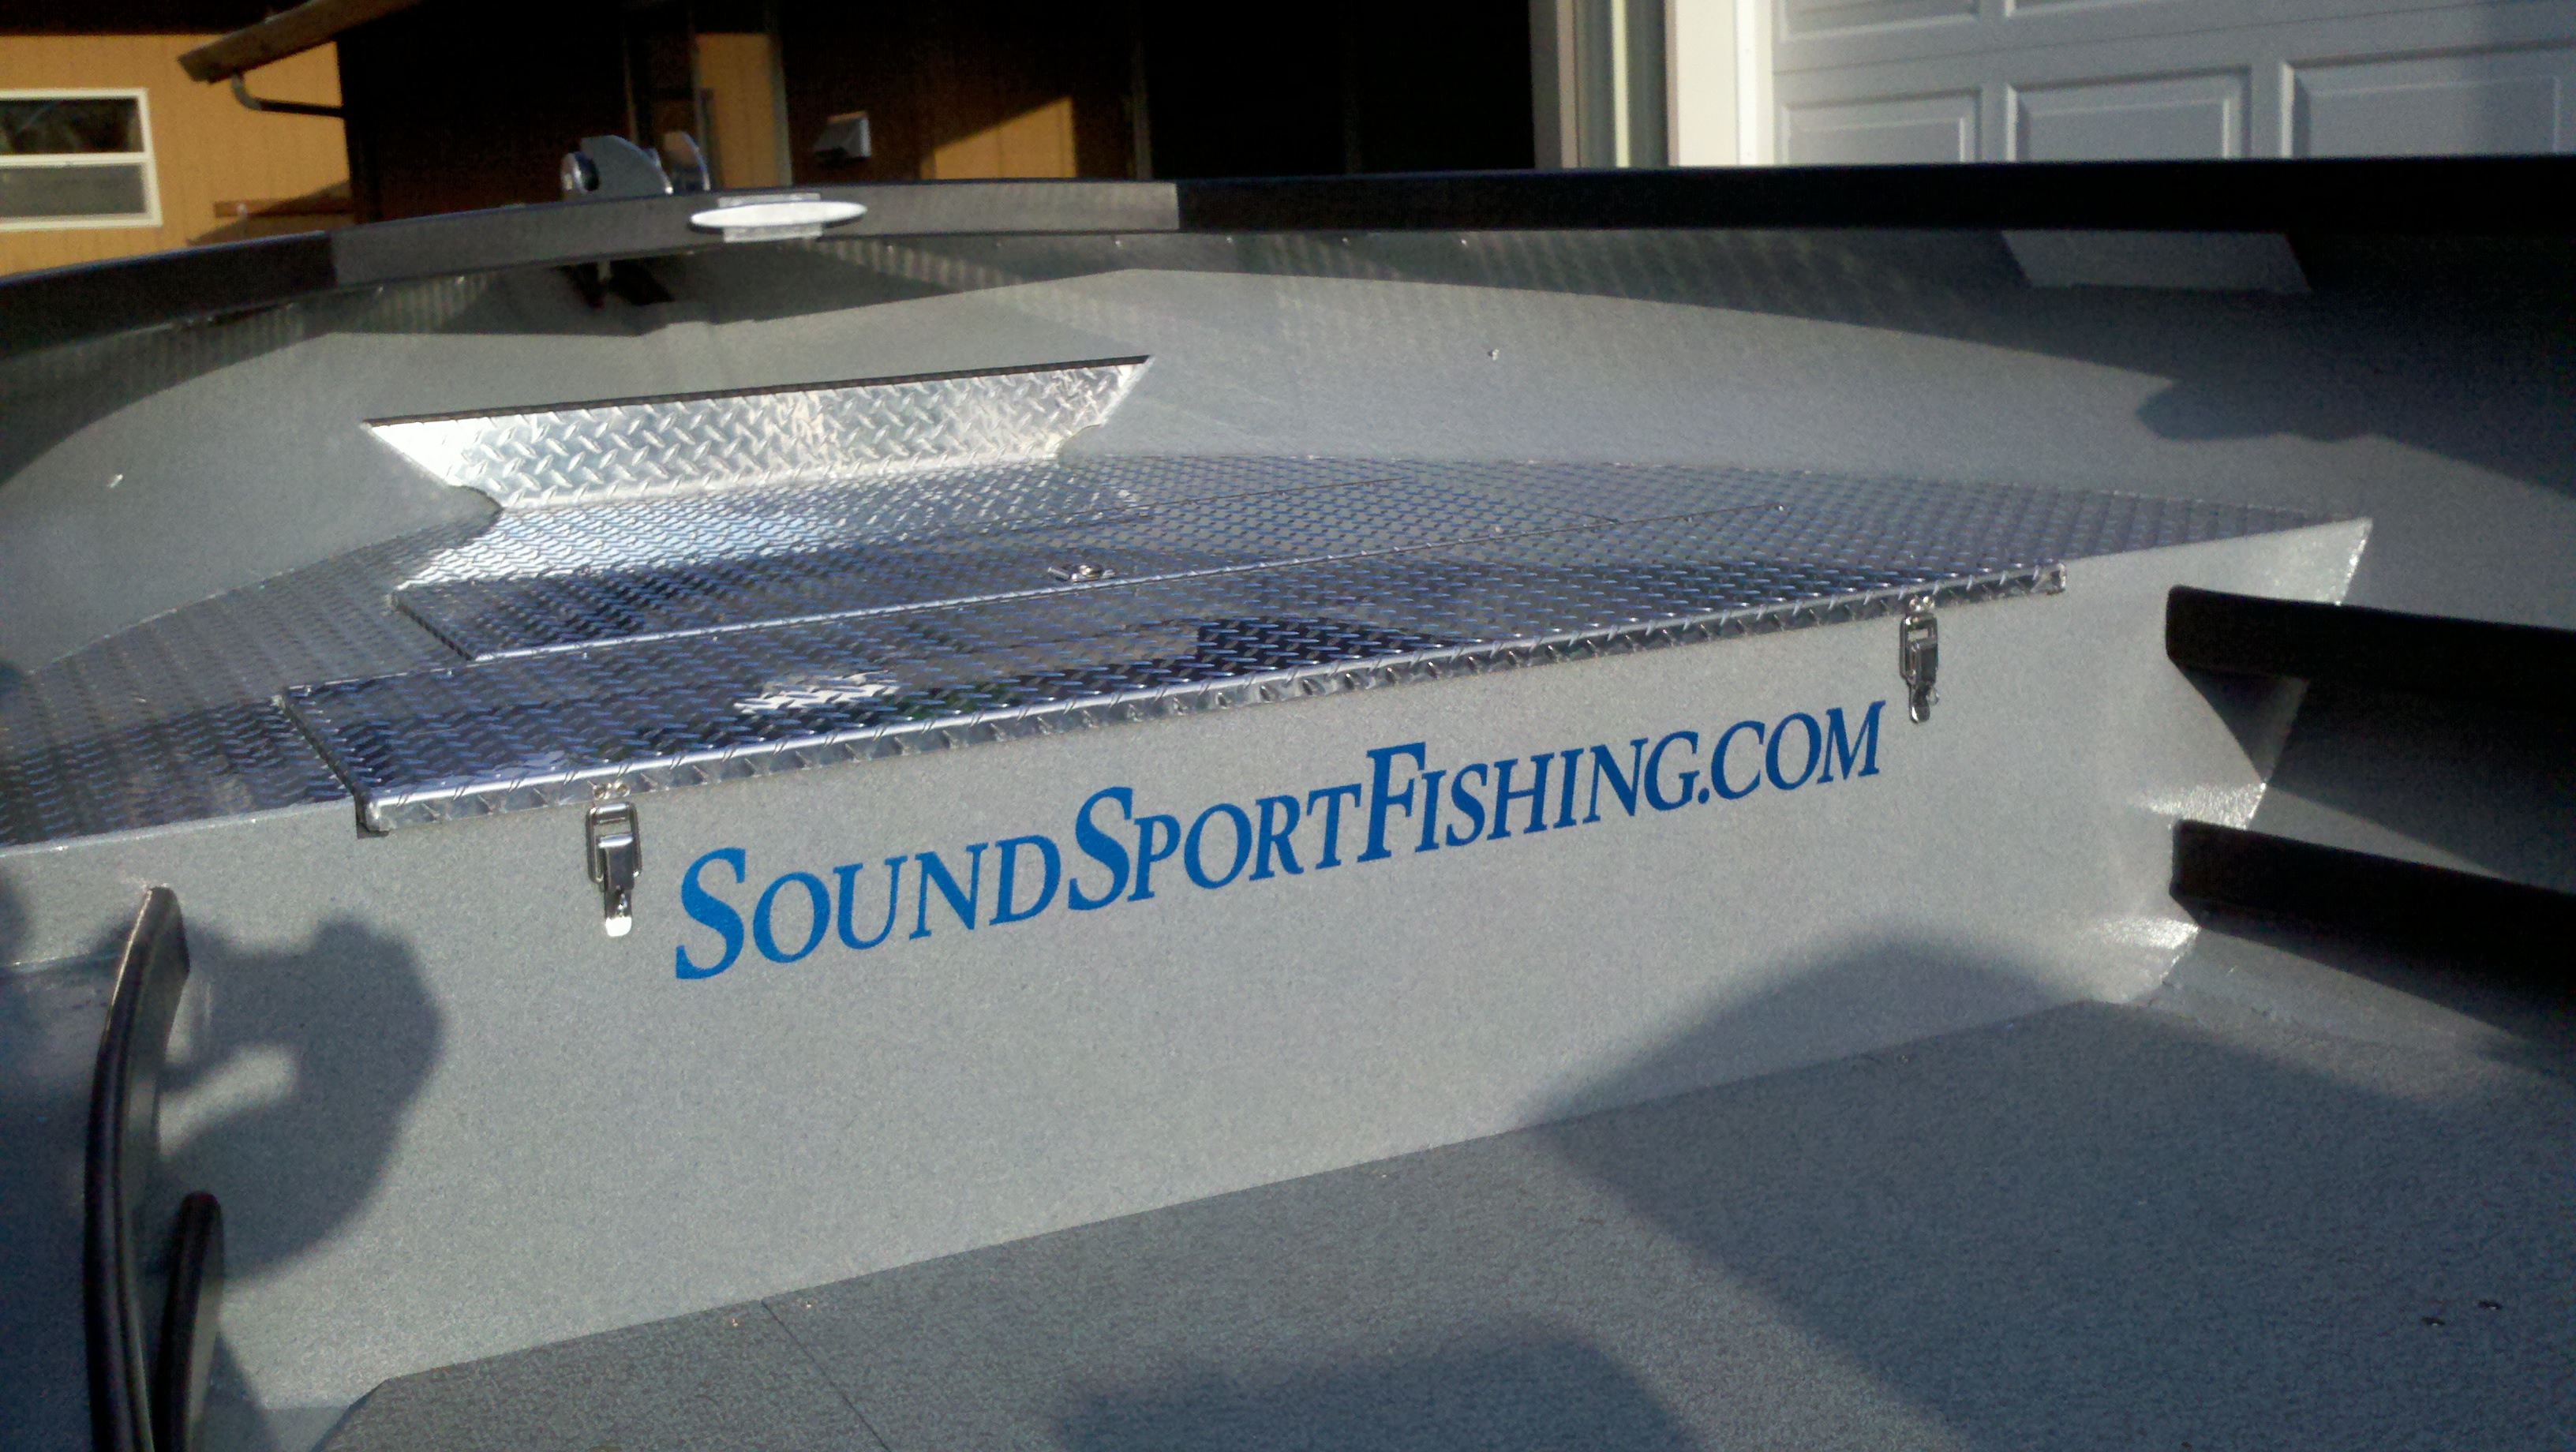 SoundSportFishing.com Boat With Marine Barrier